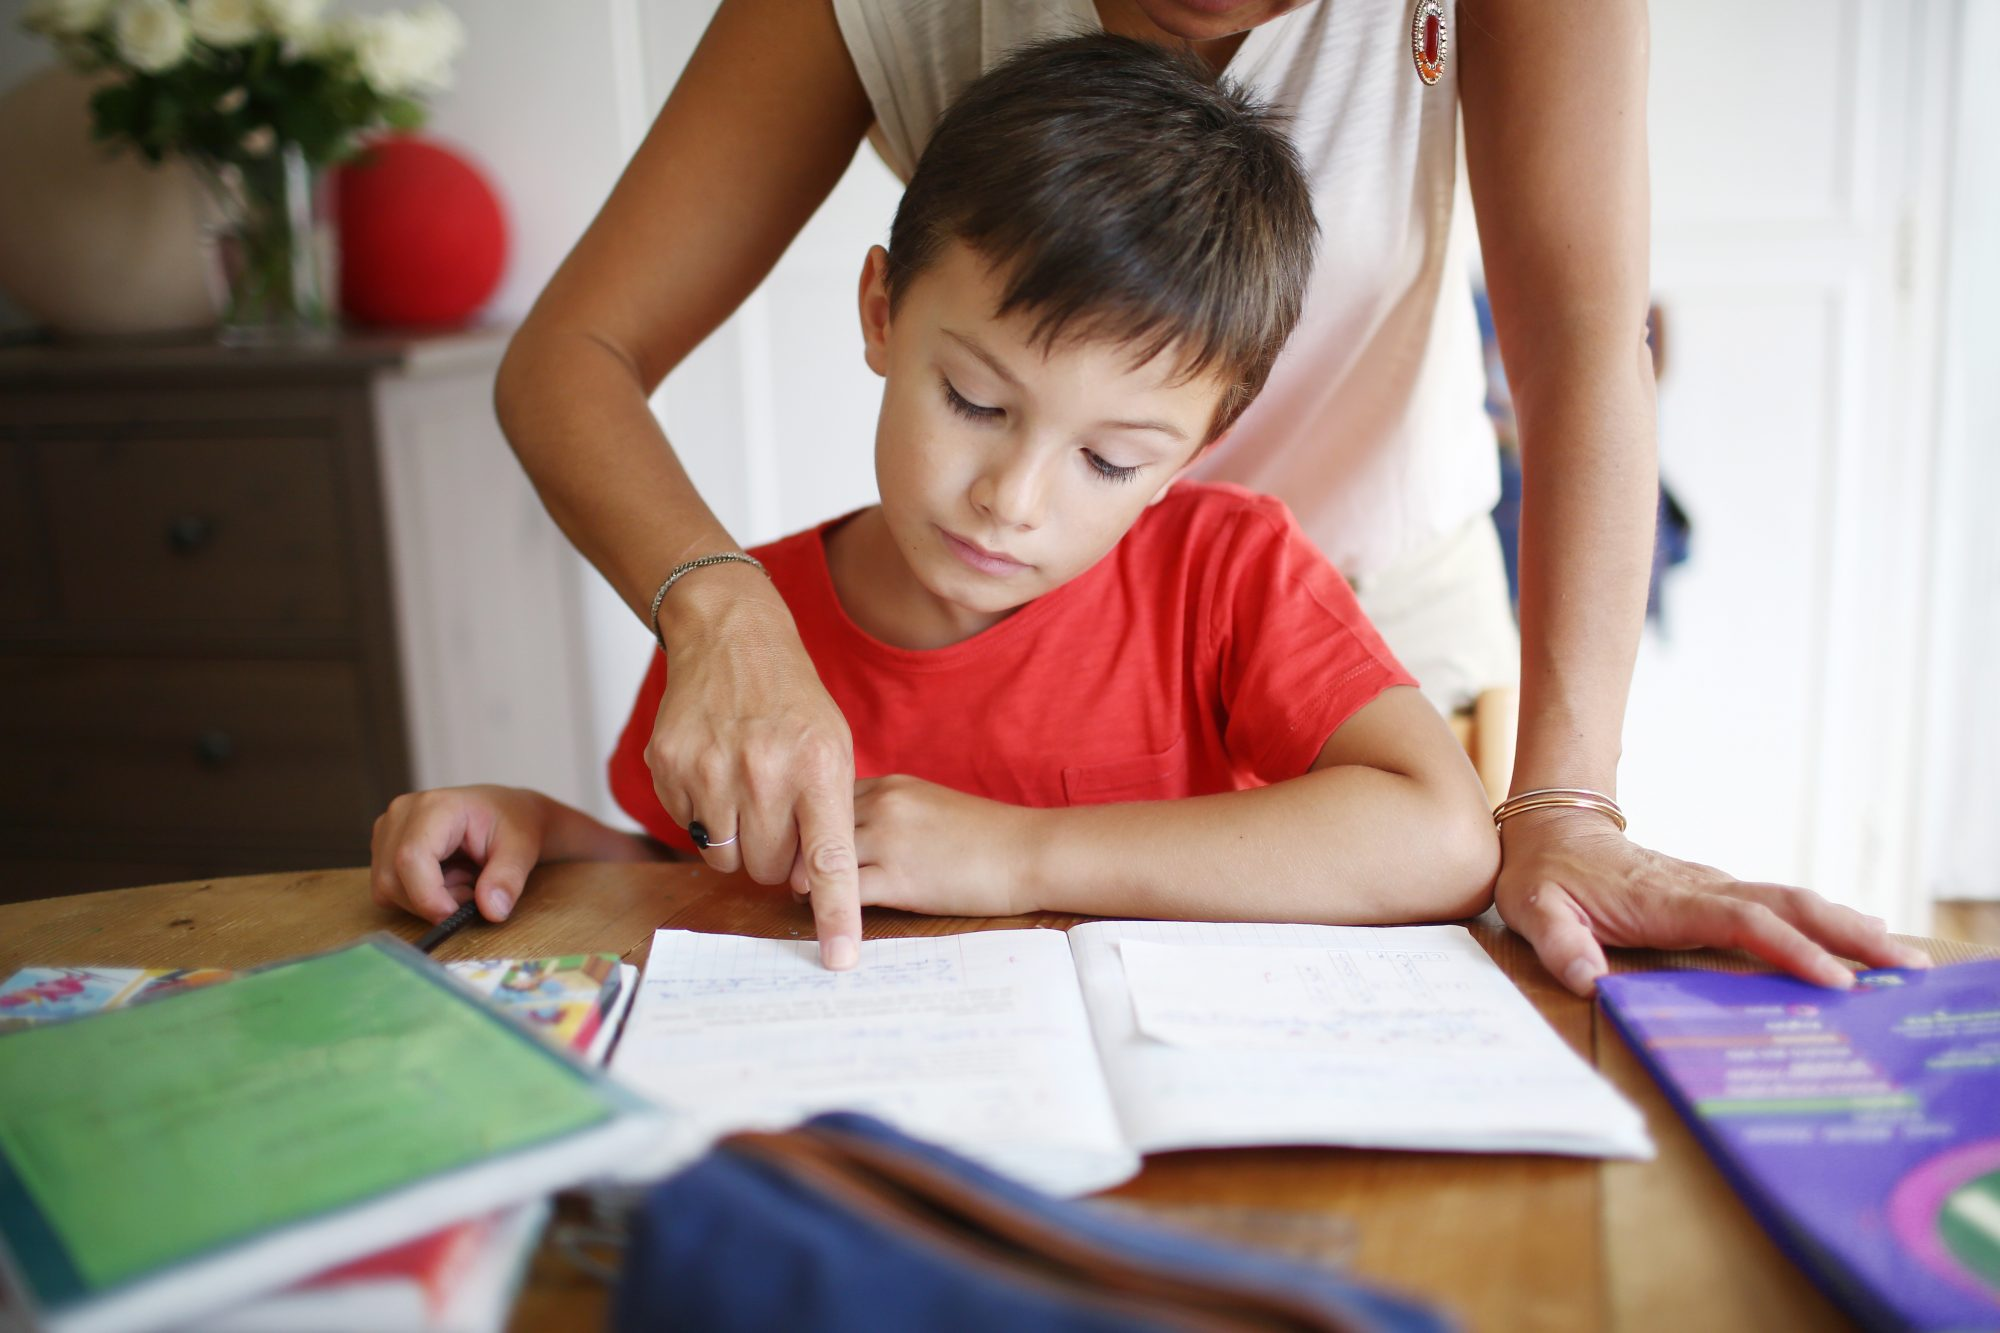 Mom Helps Boy With Homework